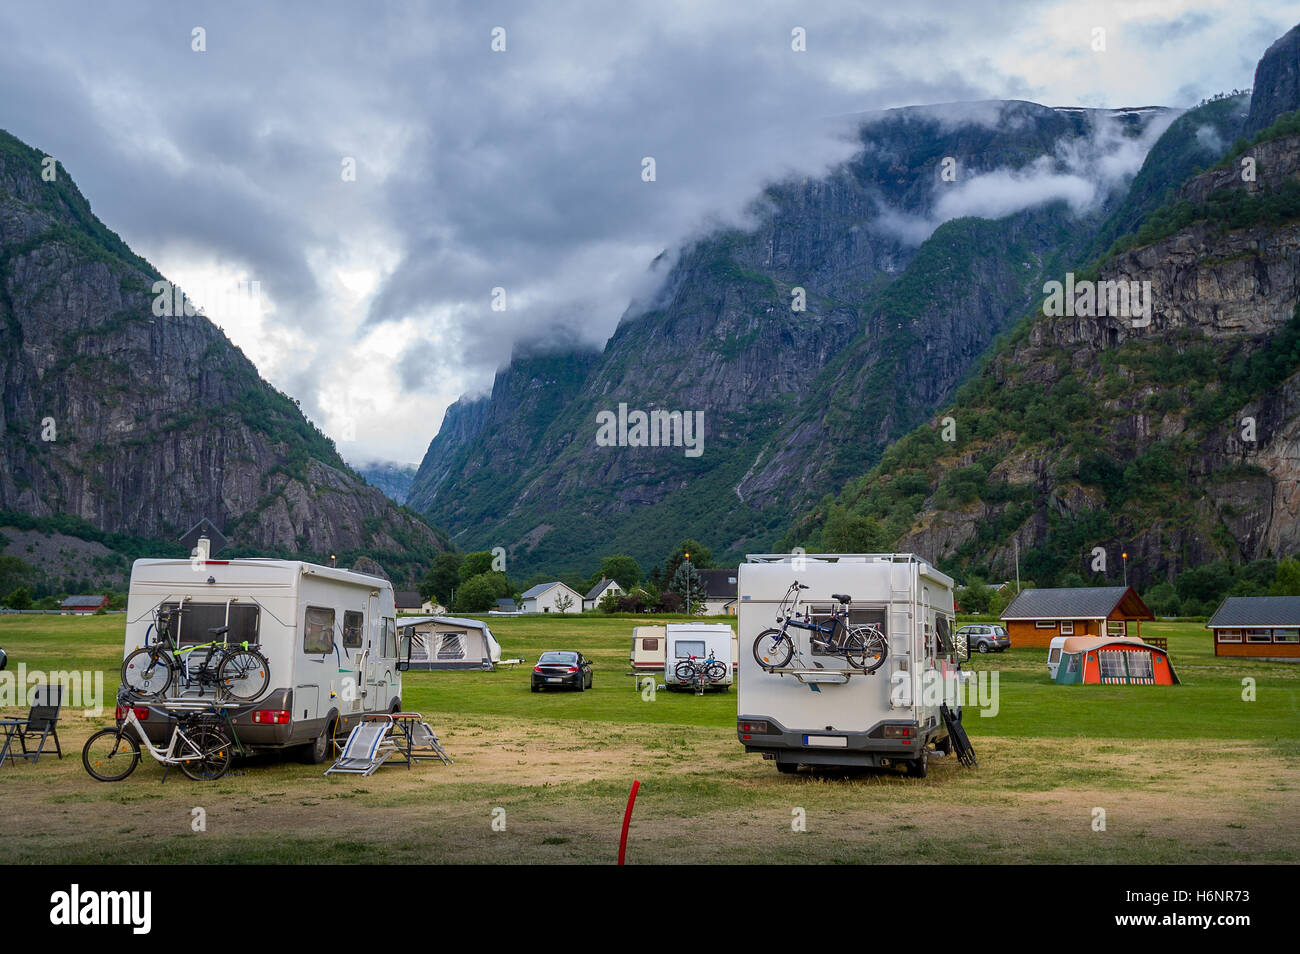 Camper cars at beautiful mountain landscape of Eidfjord, Norway - Stock Image